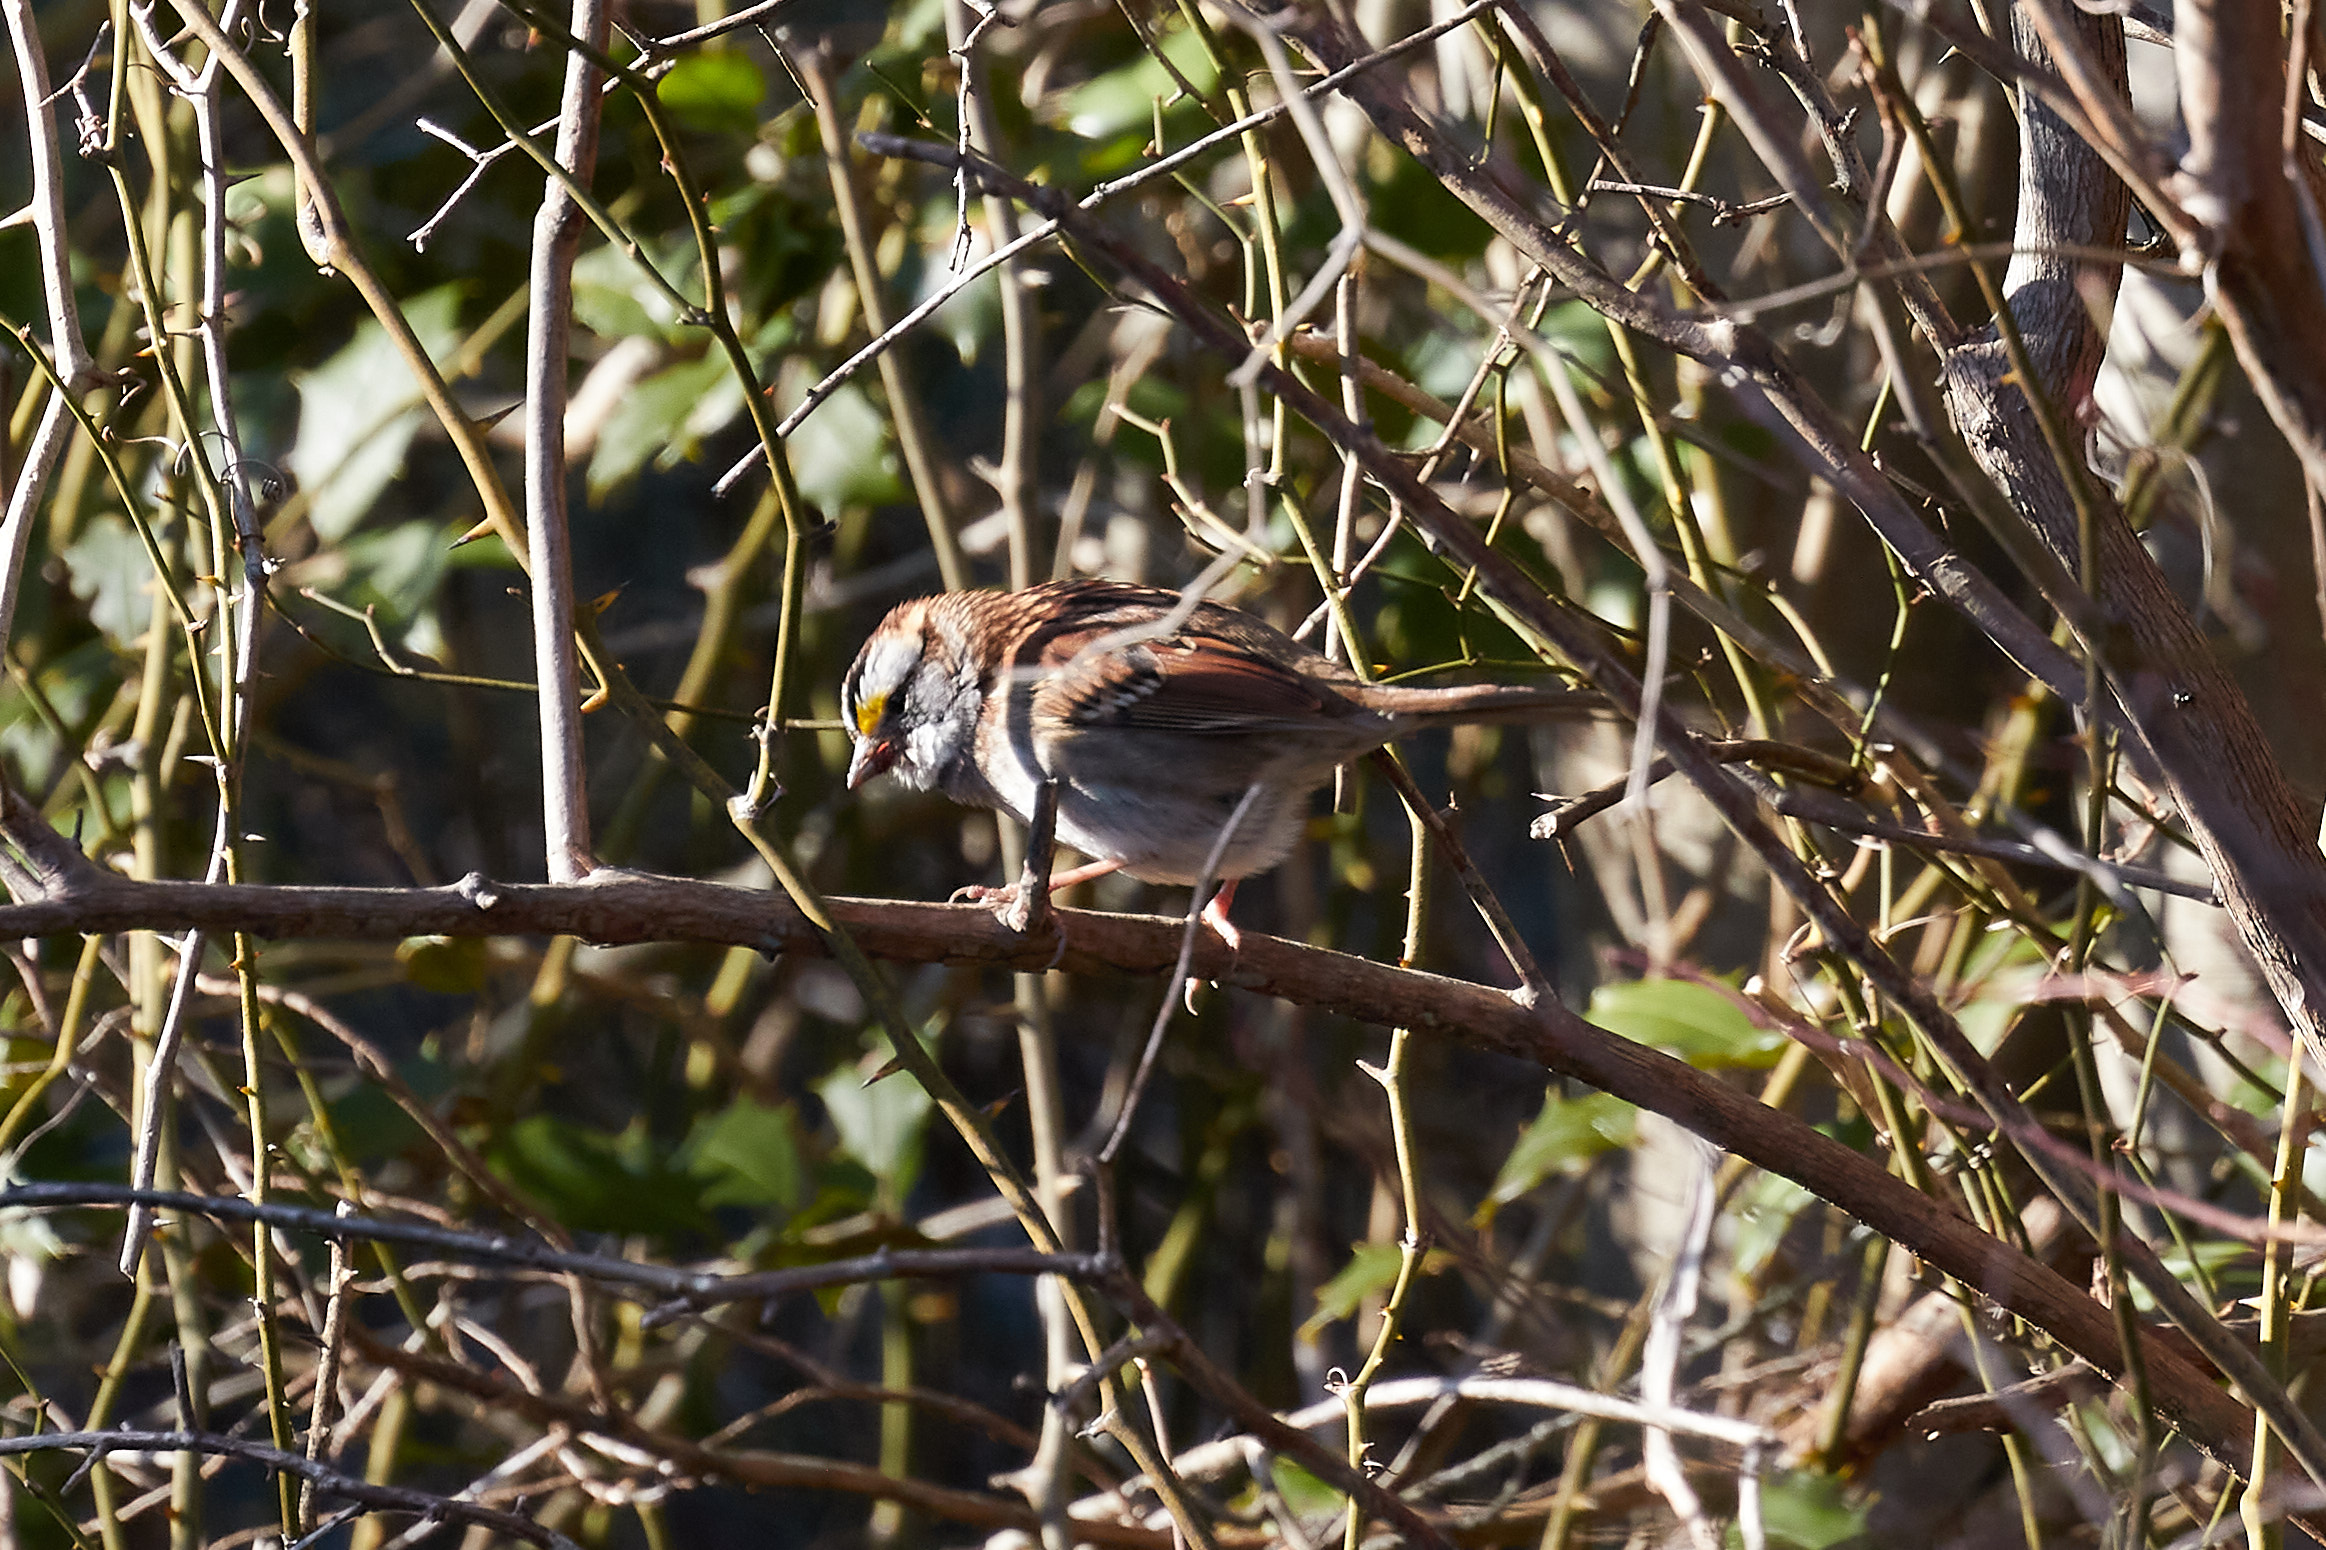 Small bird on branch, with its feathers puffed up.